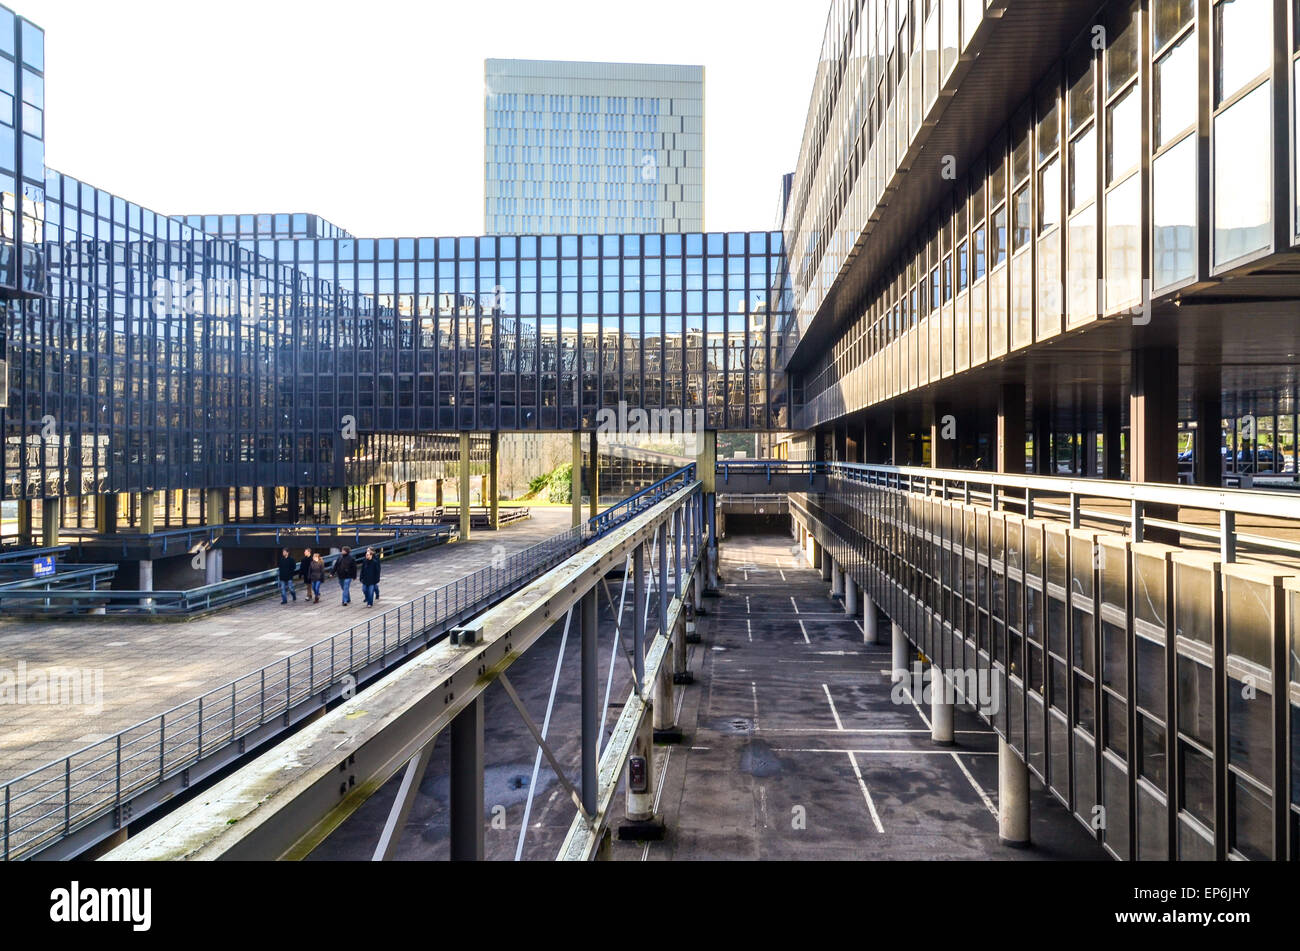 Visitors walking in the European Commission (Bâtiment Jean Monnet) in the European Quarter, Kirchberg, Luxembourg - Stock Image